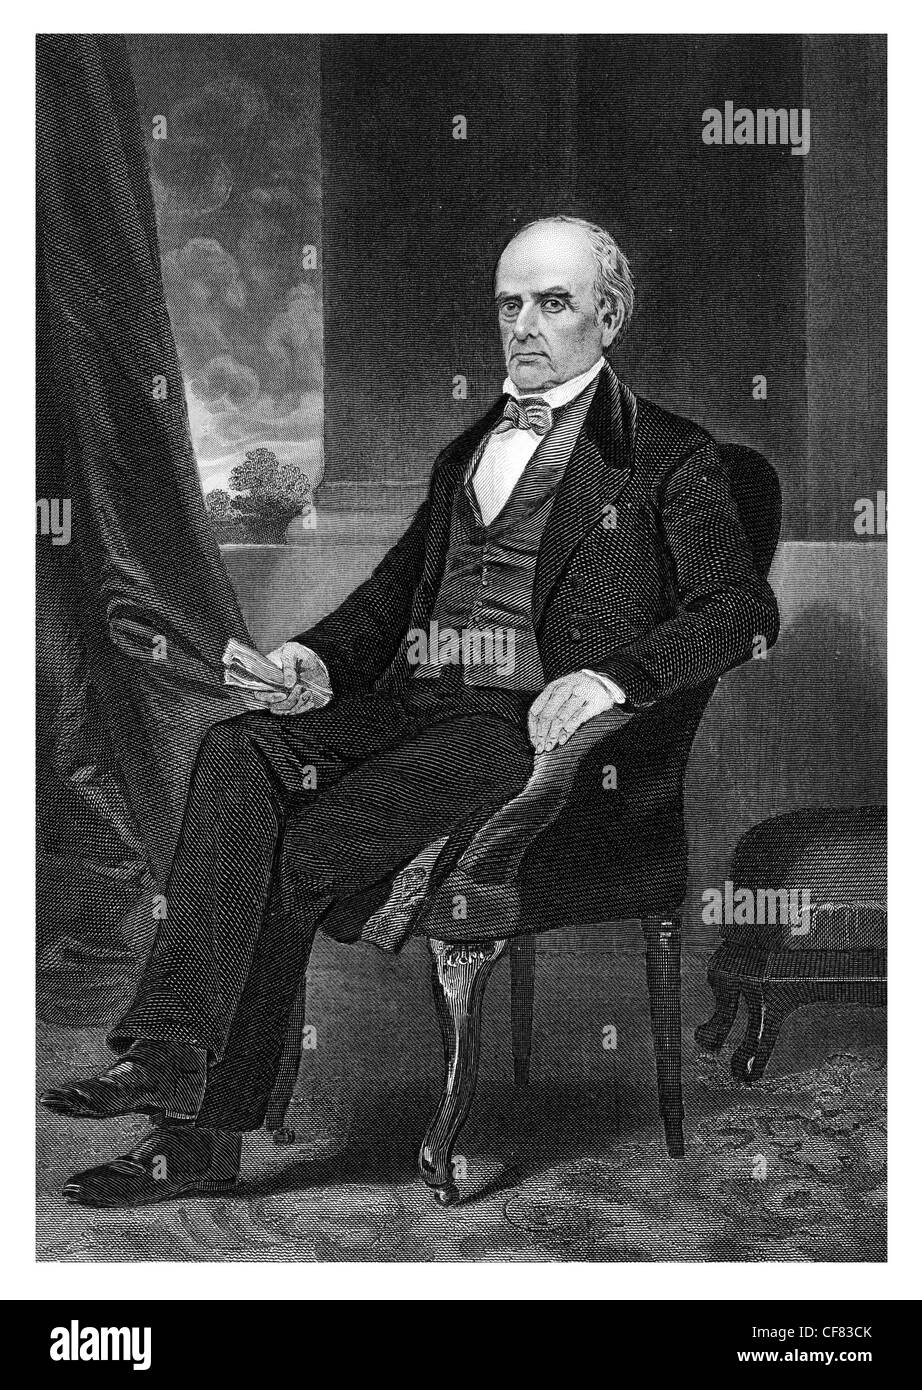 Daniel Webster 1792 to 1852 American orator and politician - Stock Image